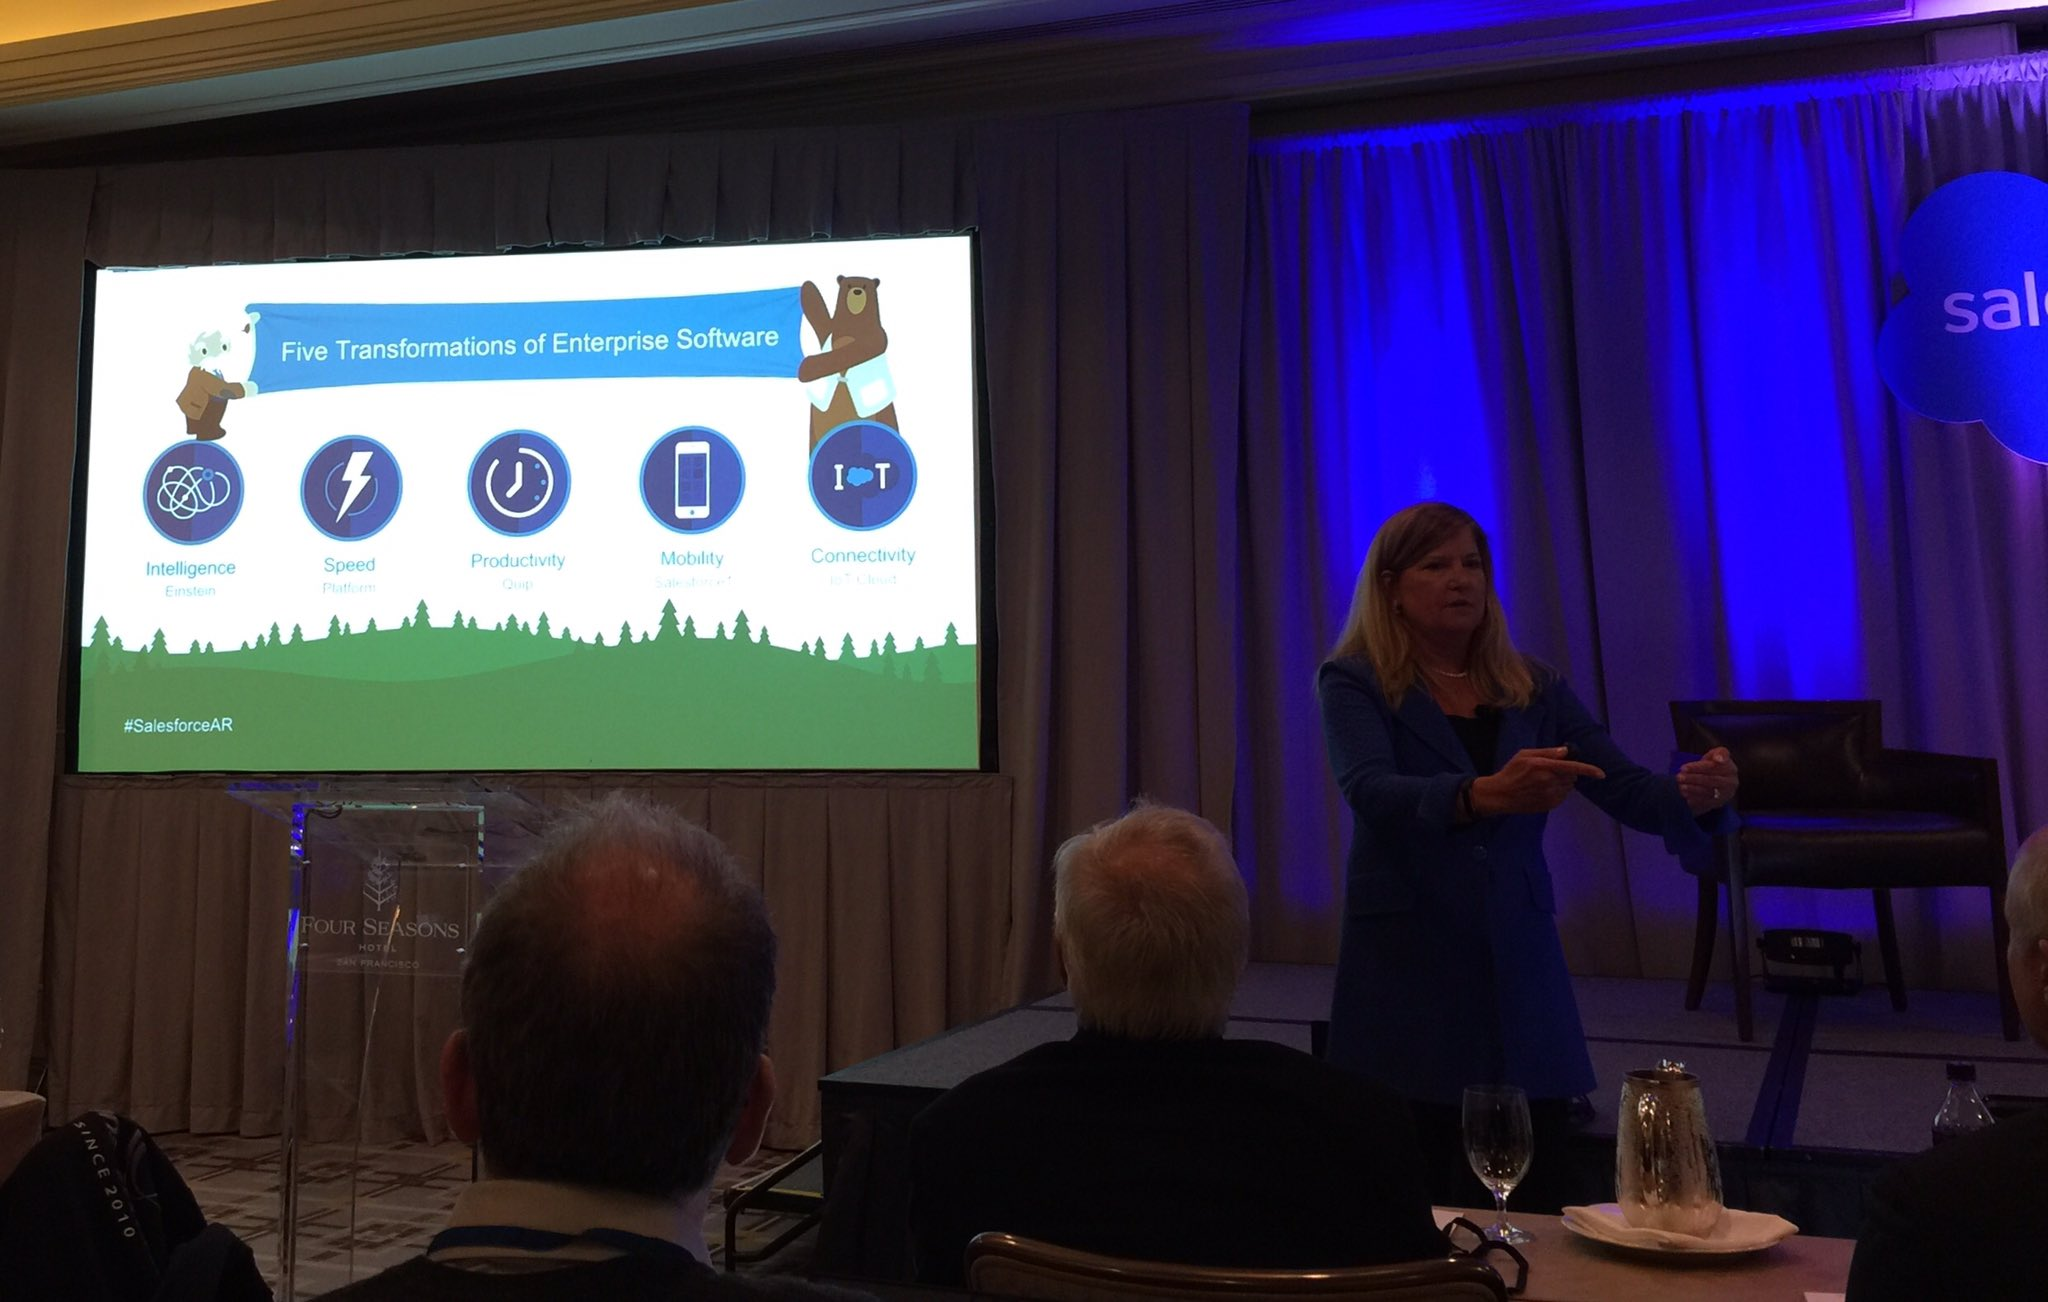 .@polly_sumner presenting the 5 transformations of #enterprise #Software and where @salesforce is focused. #SalesforceAR #Mobile #IoT #AI https://t.co/FD1qgQGiQc